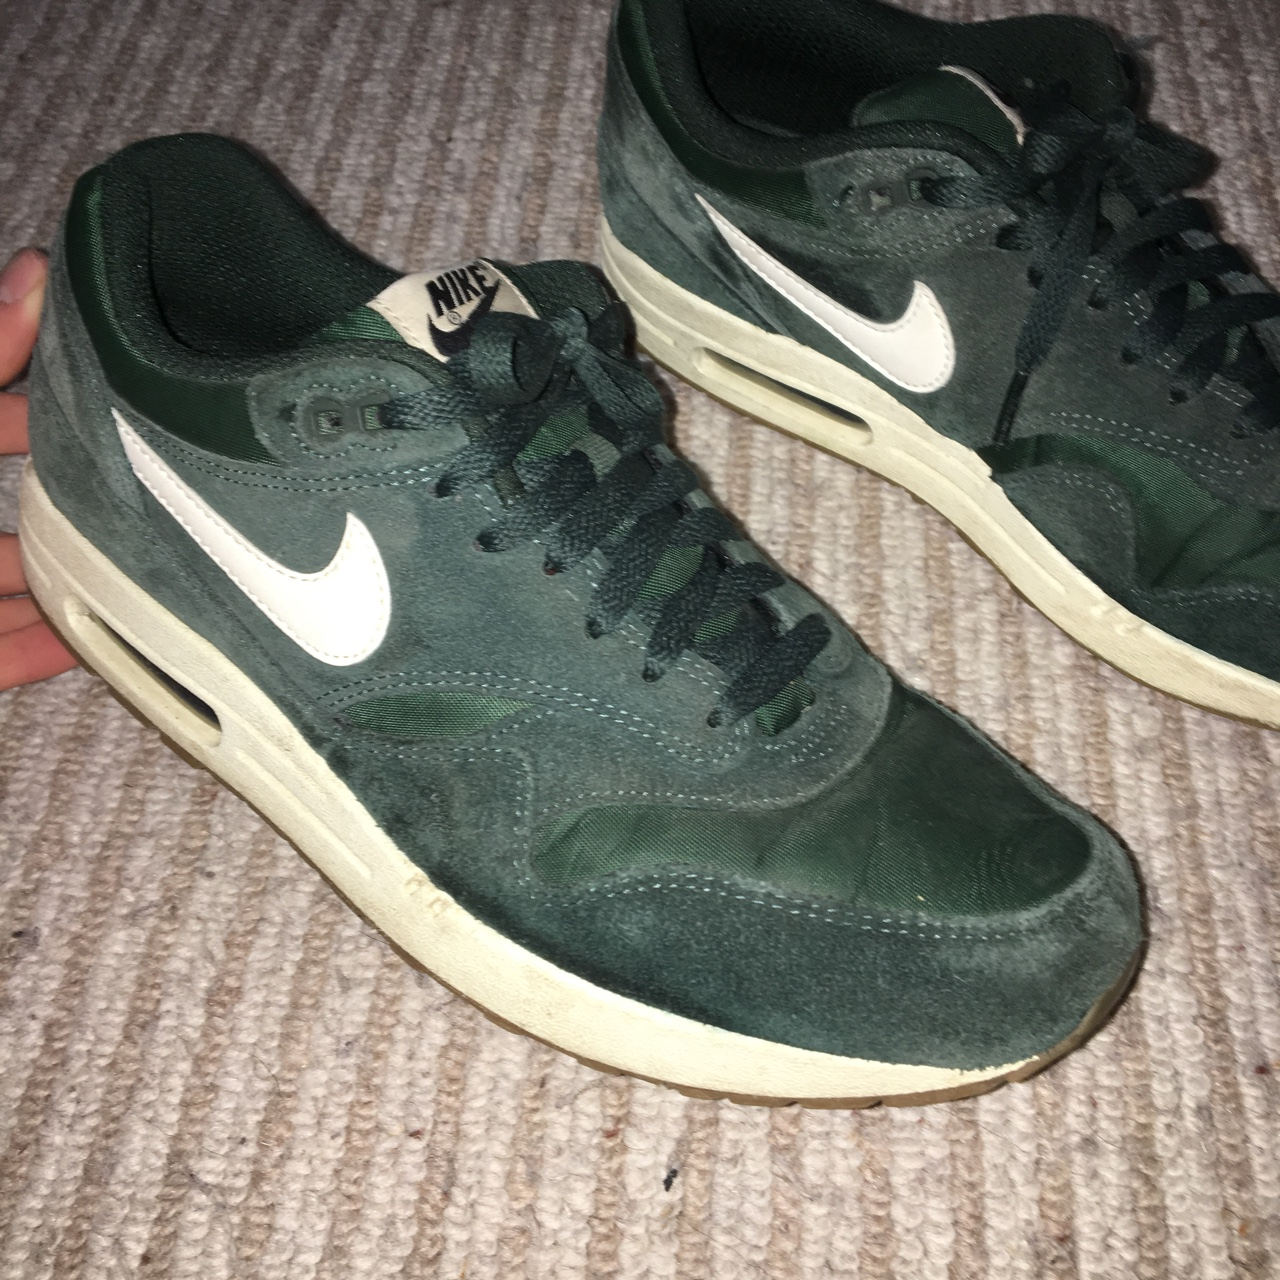 Nike Air Max 1. Dark green suede with